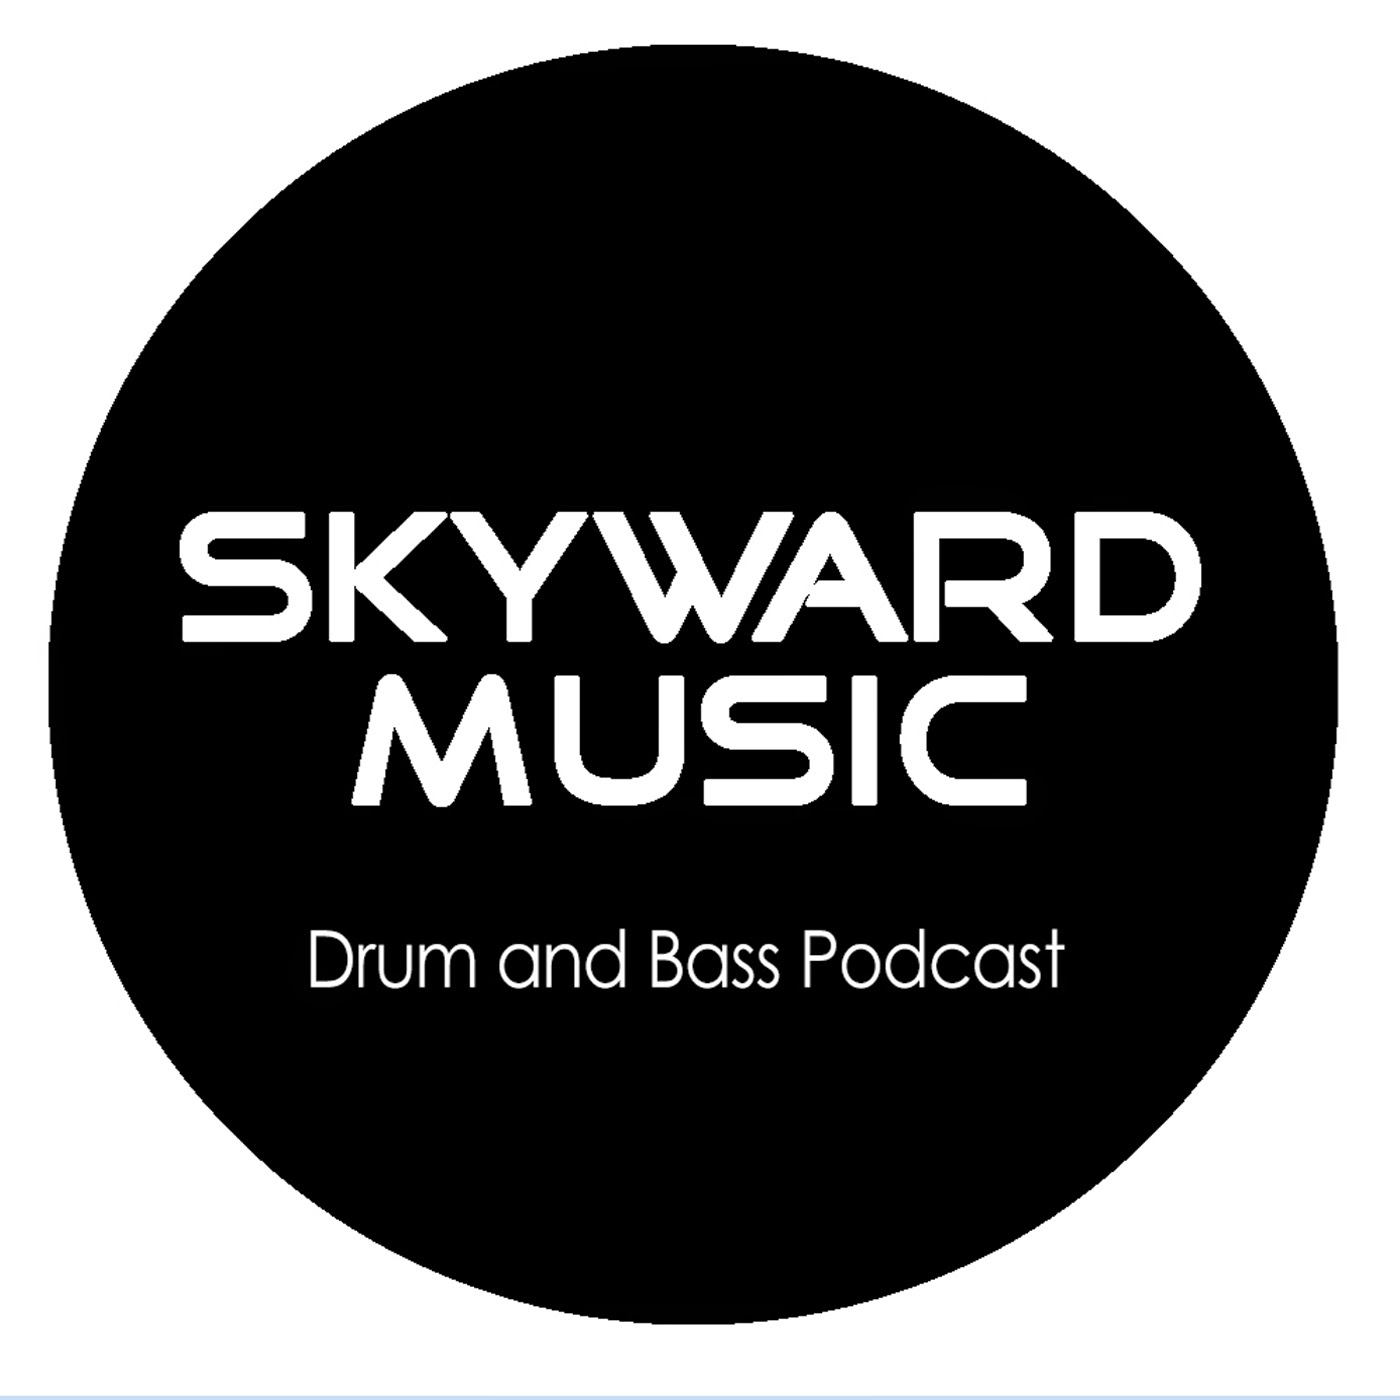 Skyward Drum and Bass Podcast